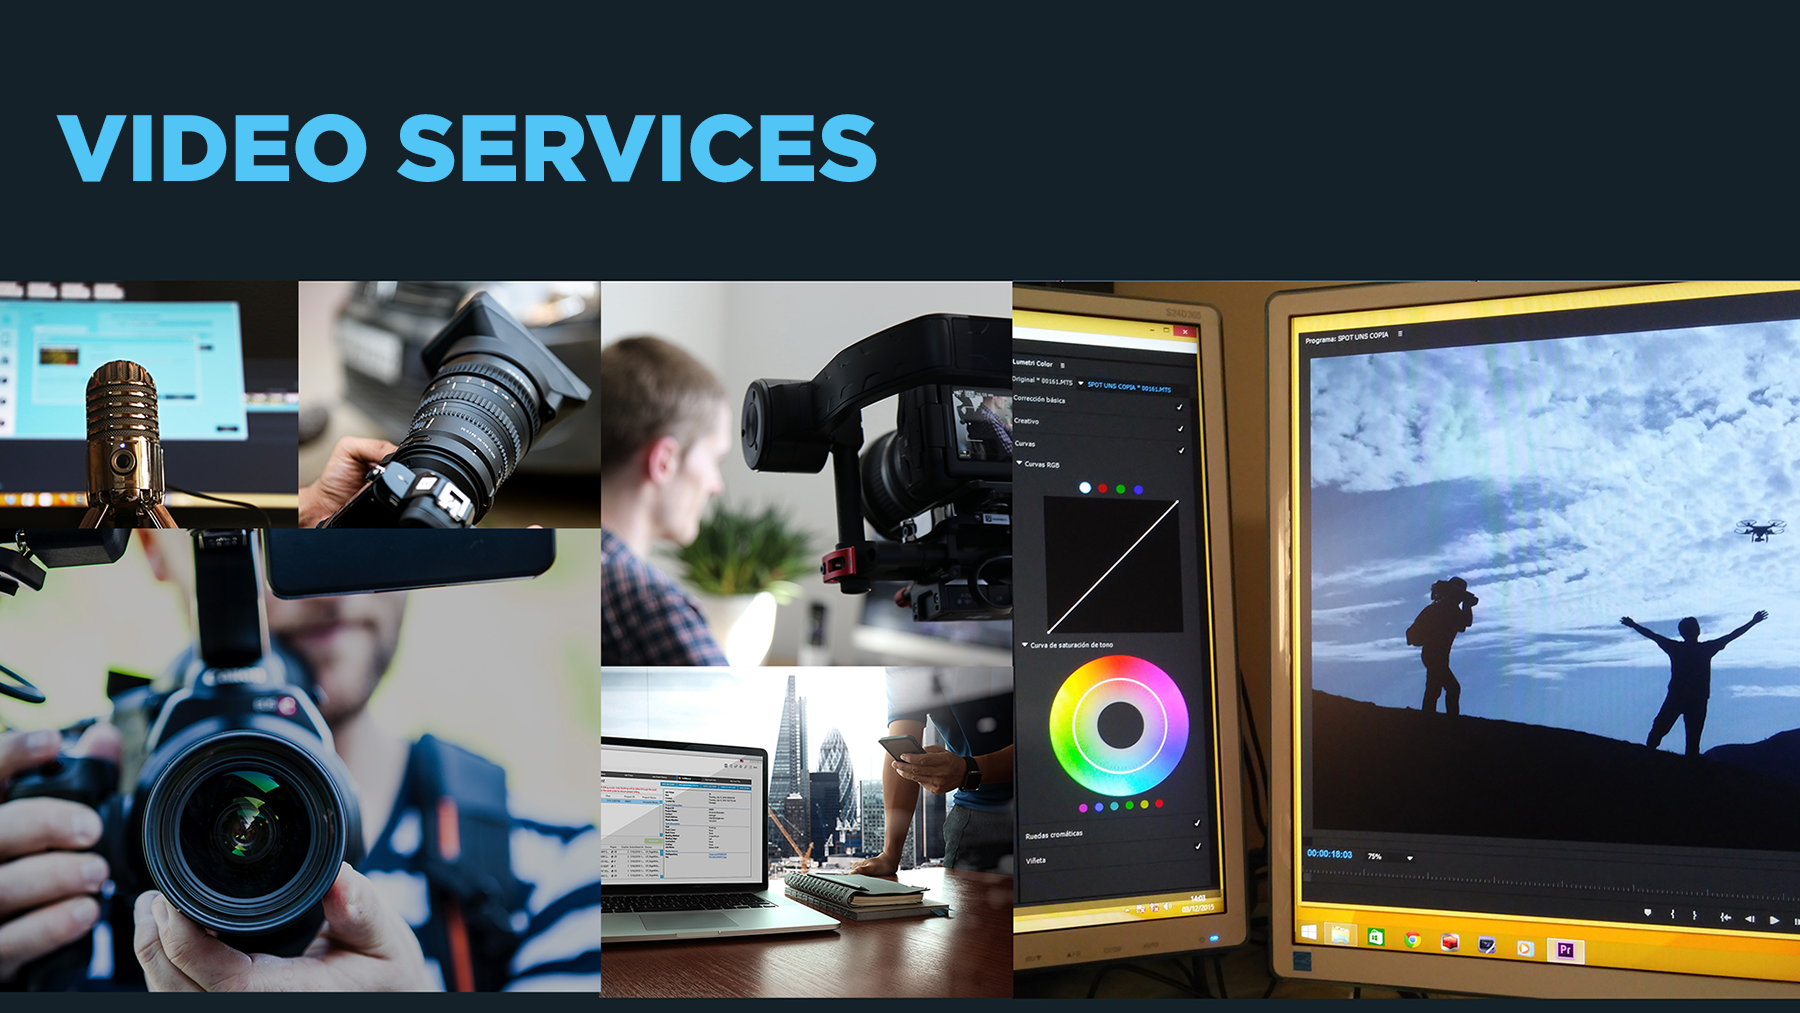 ABC IMAGING - Video Services